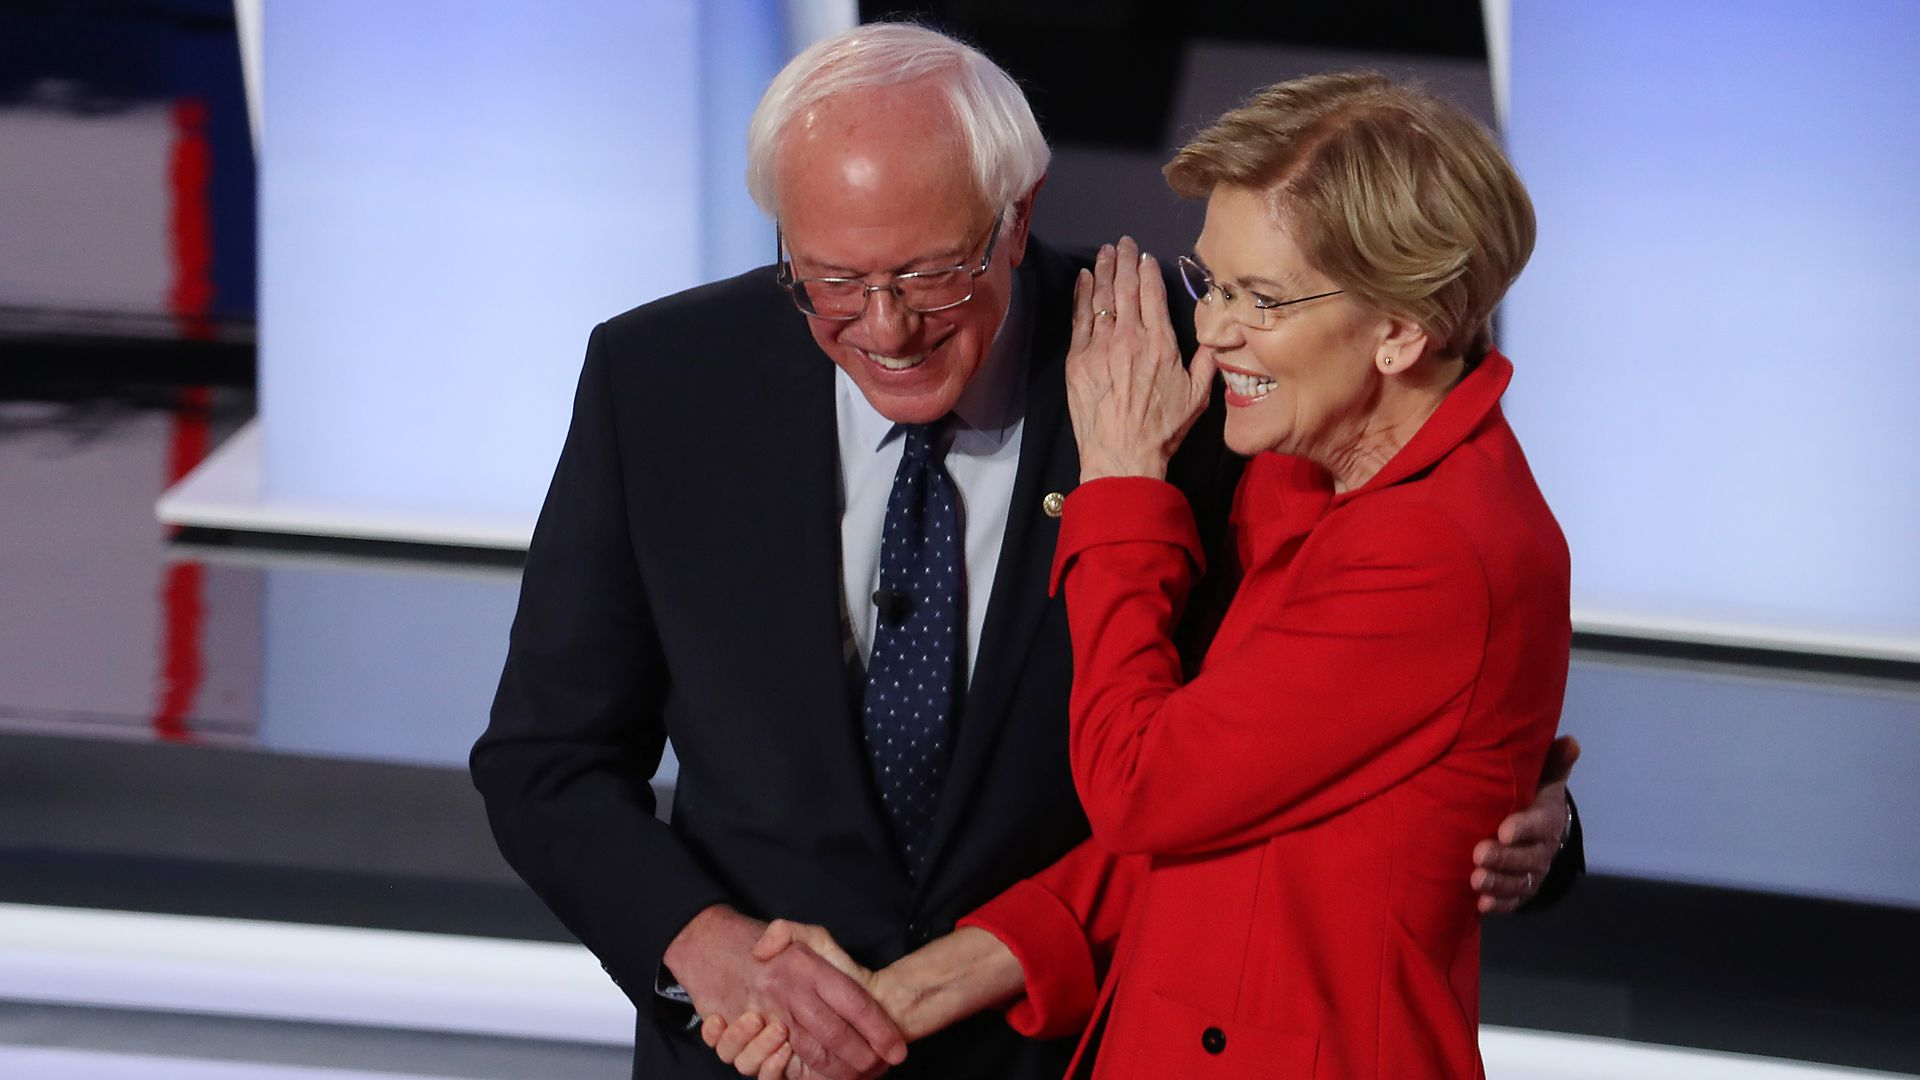 Warren, Sanders try to move past feud as early voters sound alarm